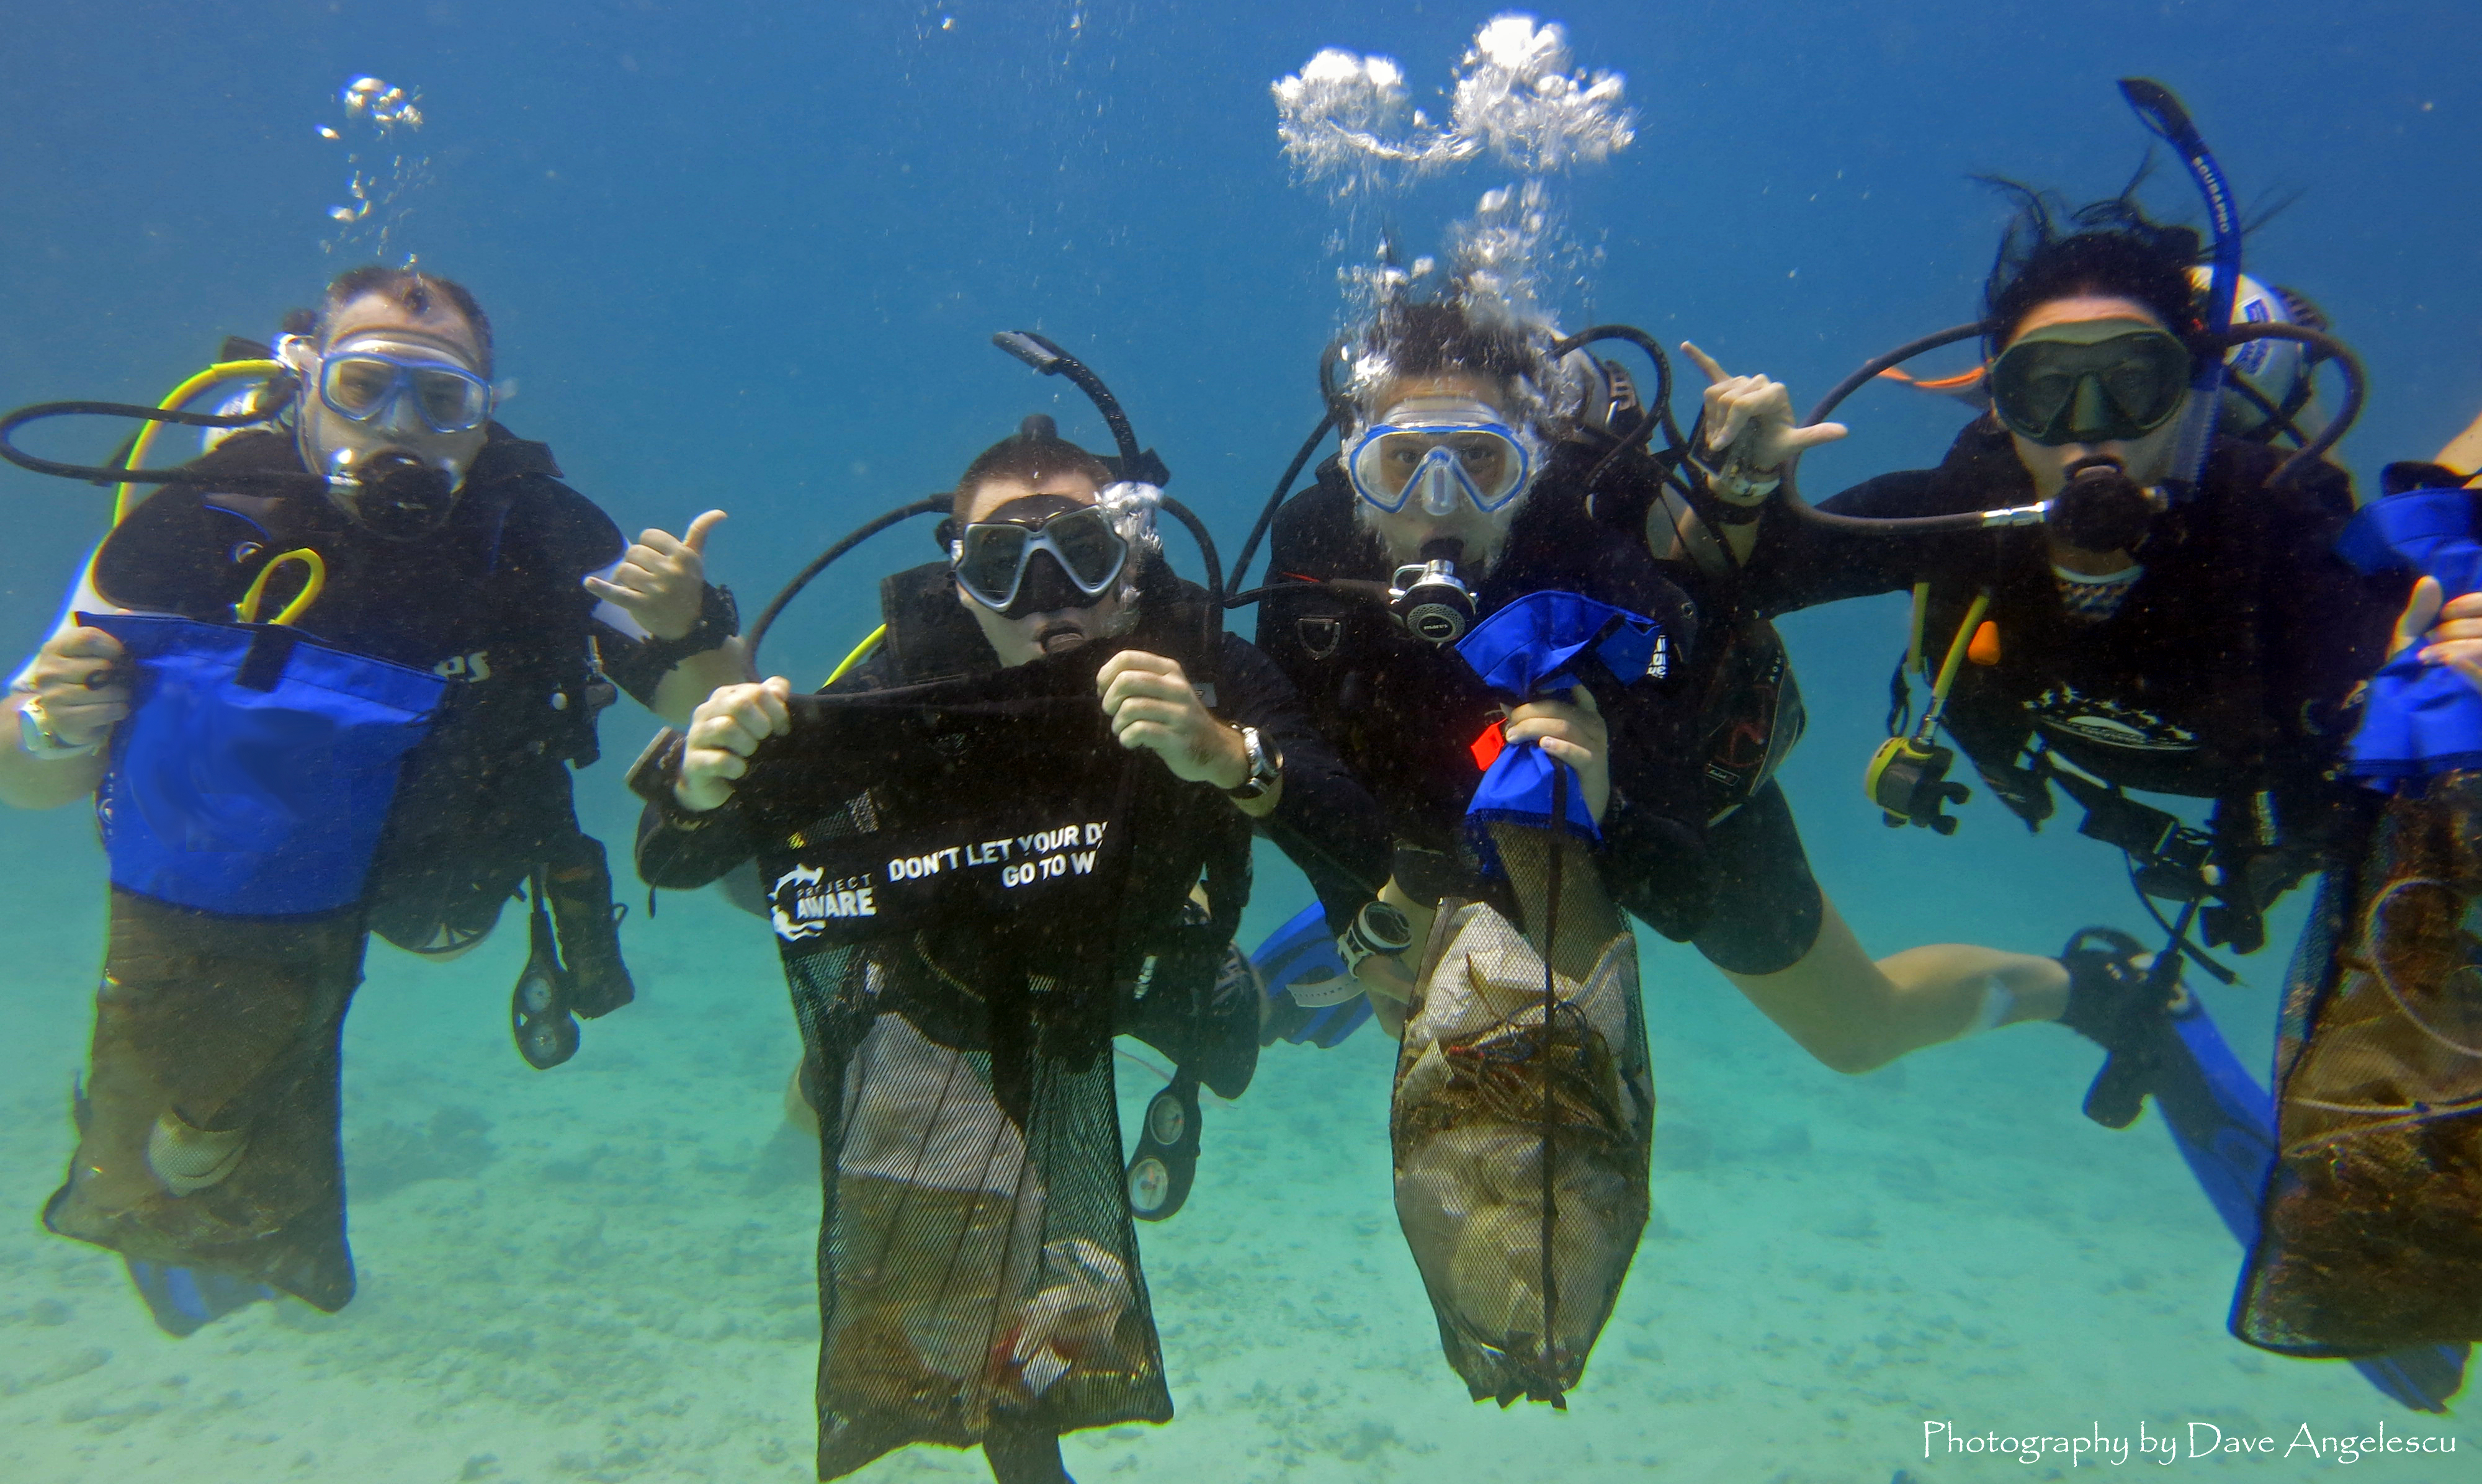 A successful diving instructor cares about the environment